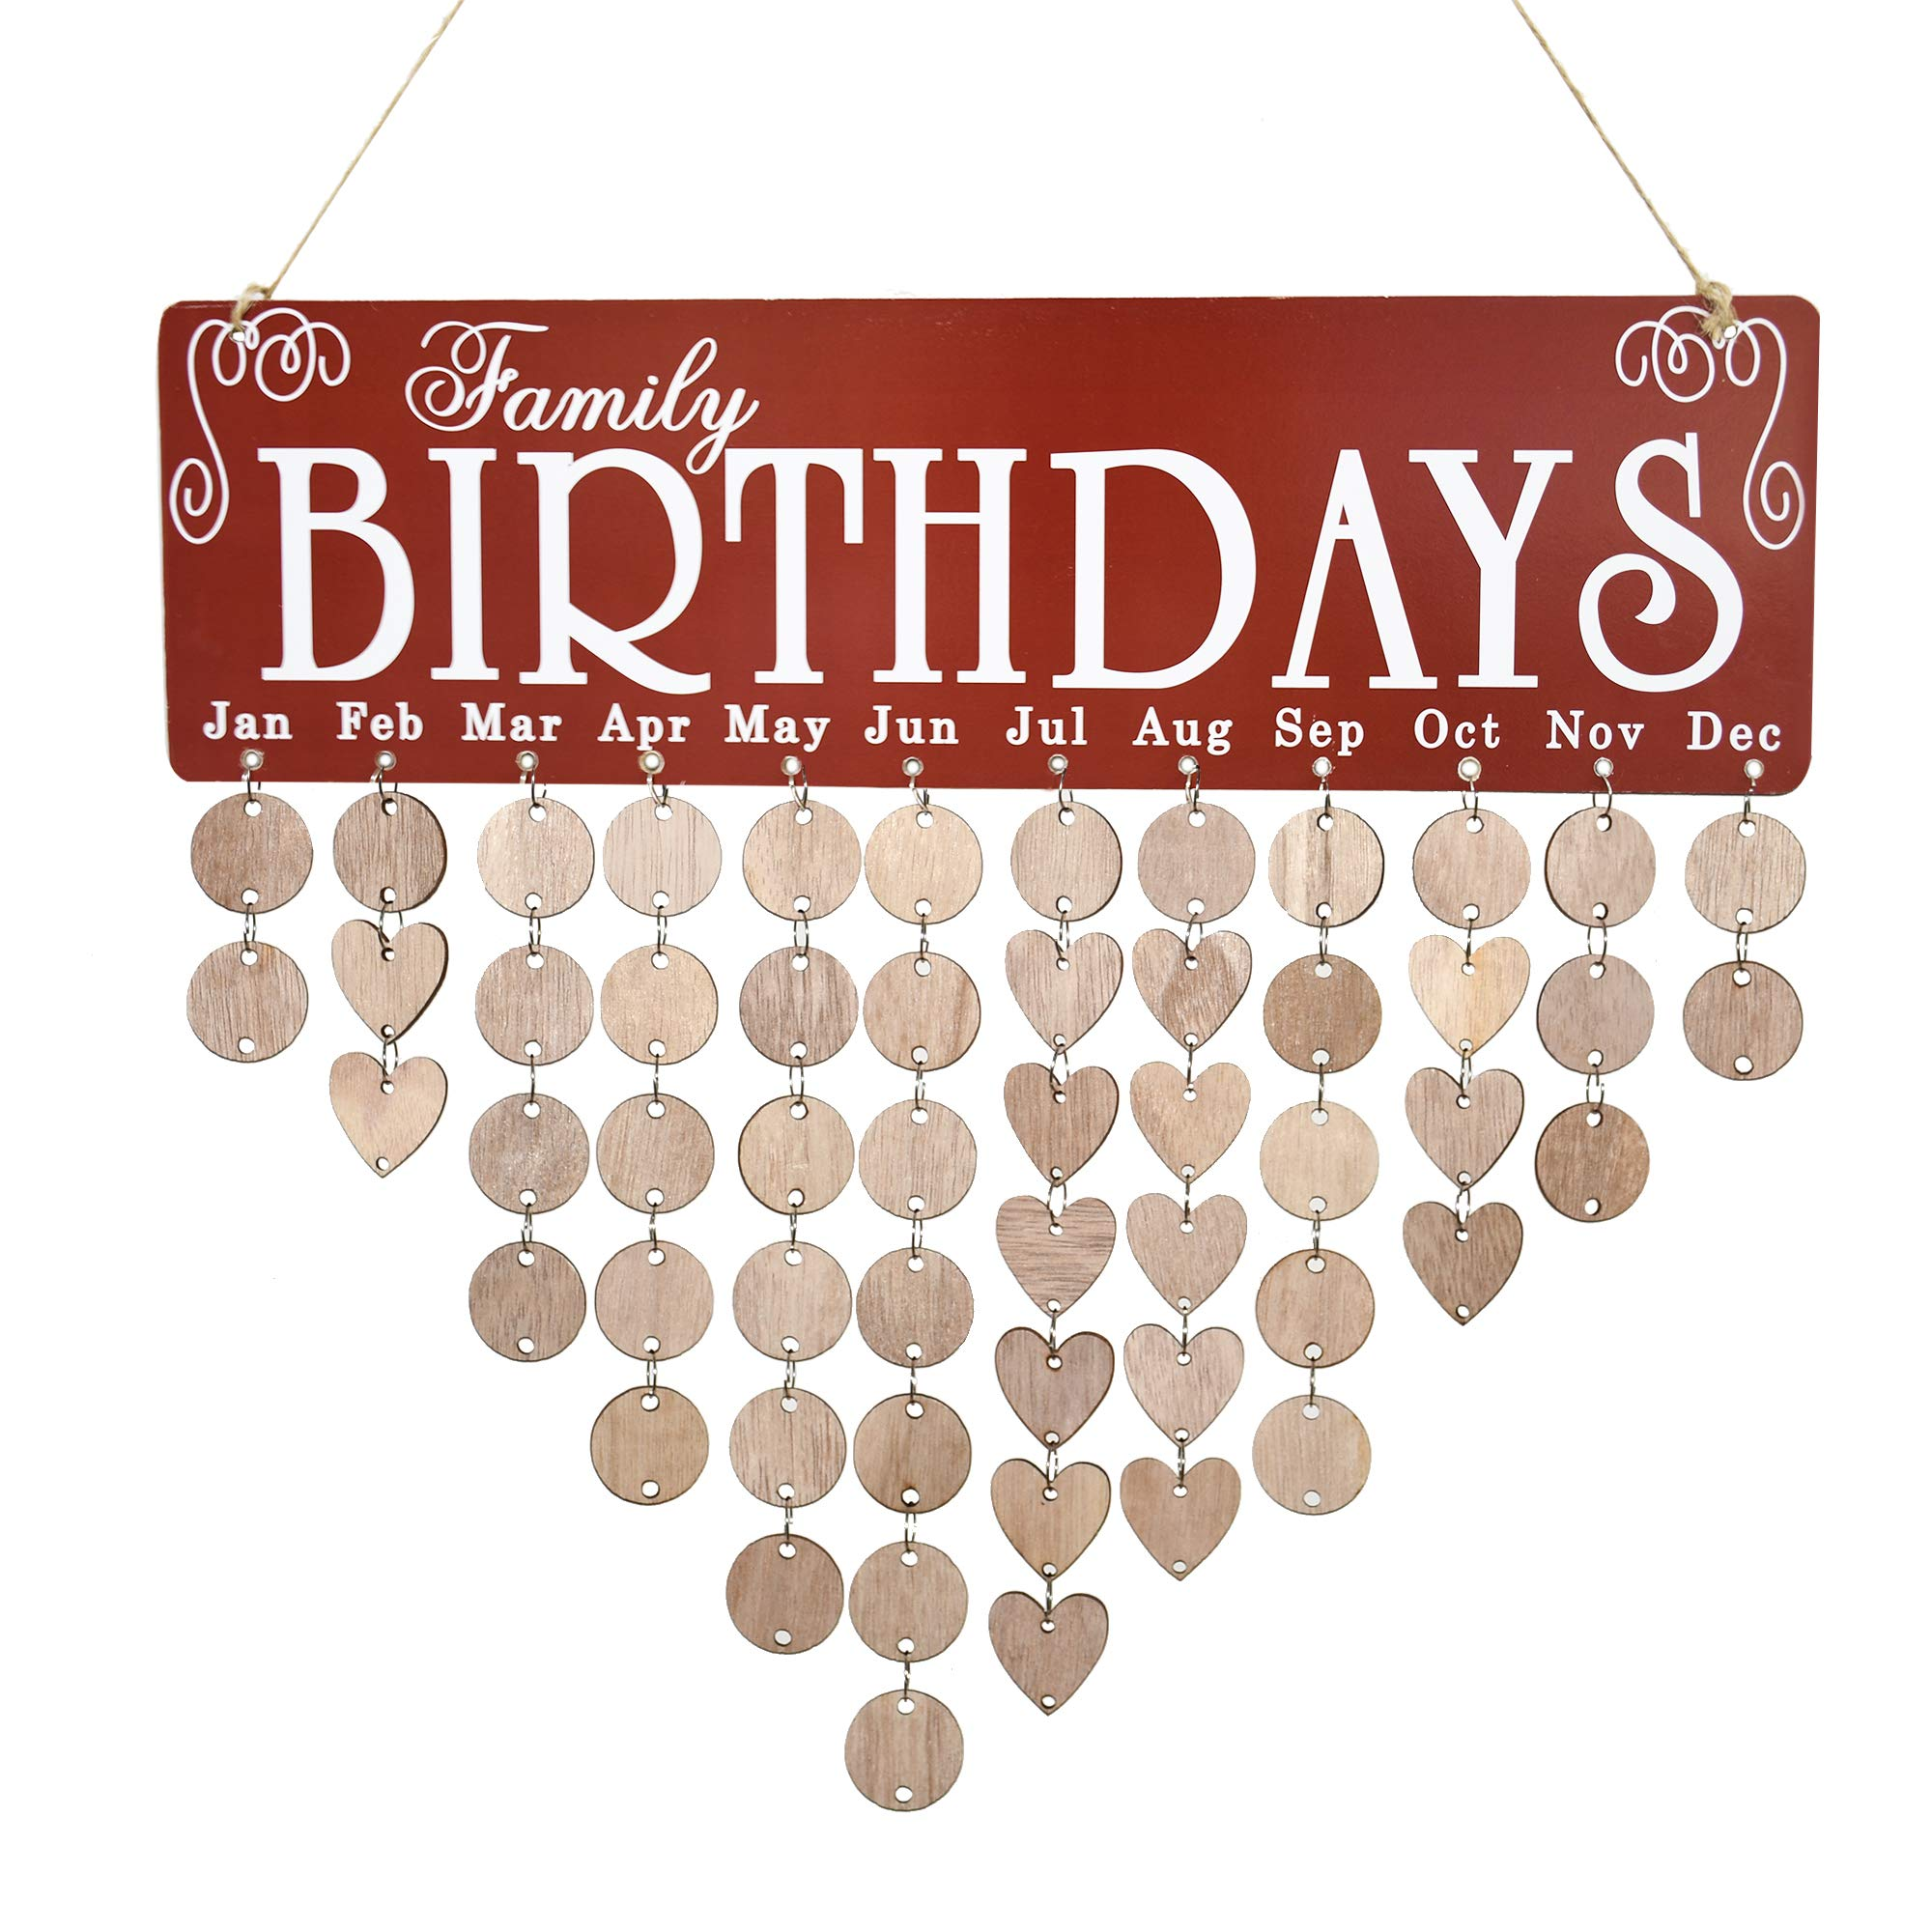 JHYQ-US Family Birthday Calendar Wooden Crafts Wall Hanging Plaque Board for Family Friends Birthday Reminder with 50 Pieces Wooden DIY Discs Hanging One by One